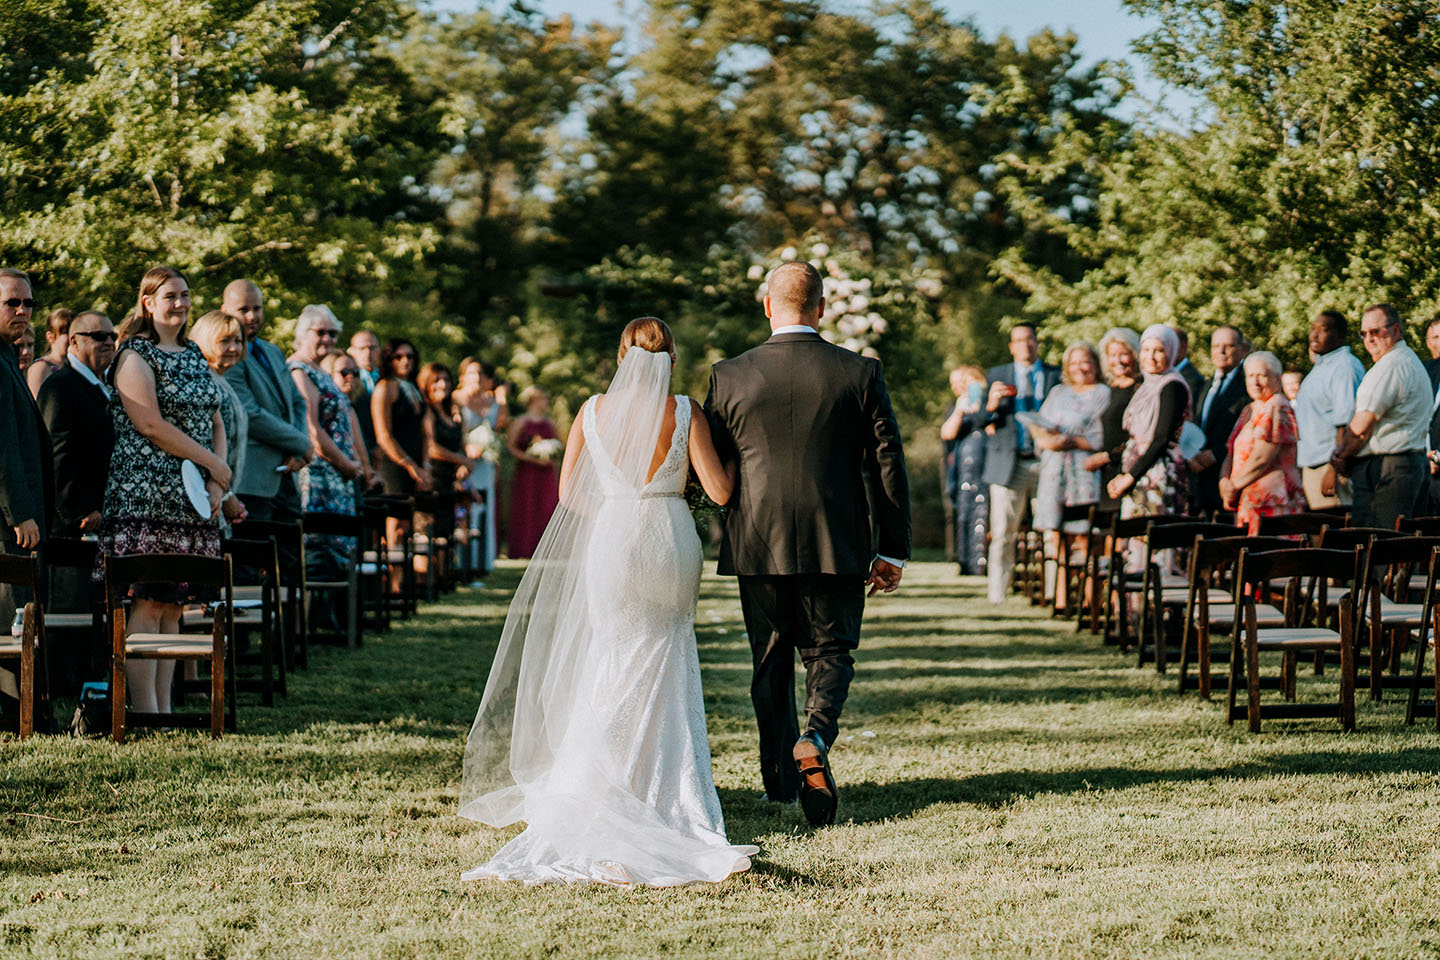 Alyssa Walking Down Aisle